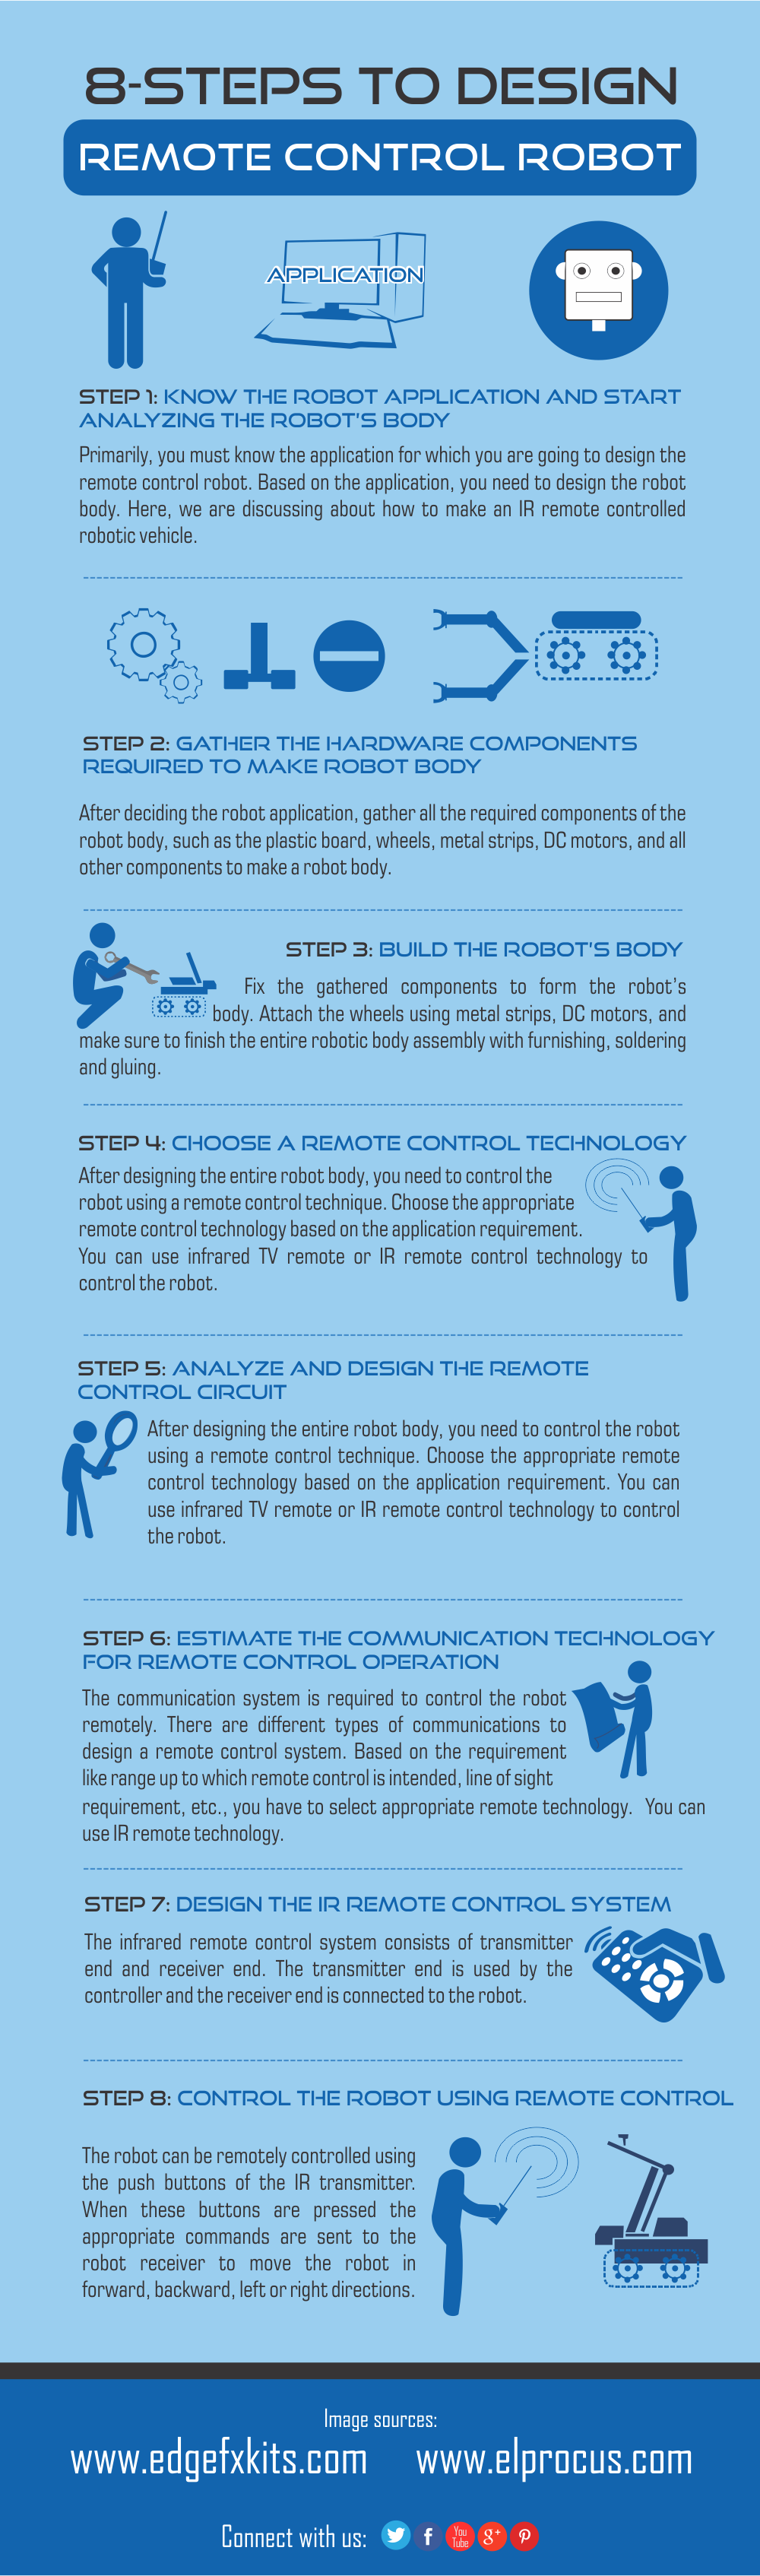 Steps to Make a Remote Control Robot